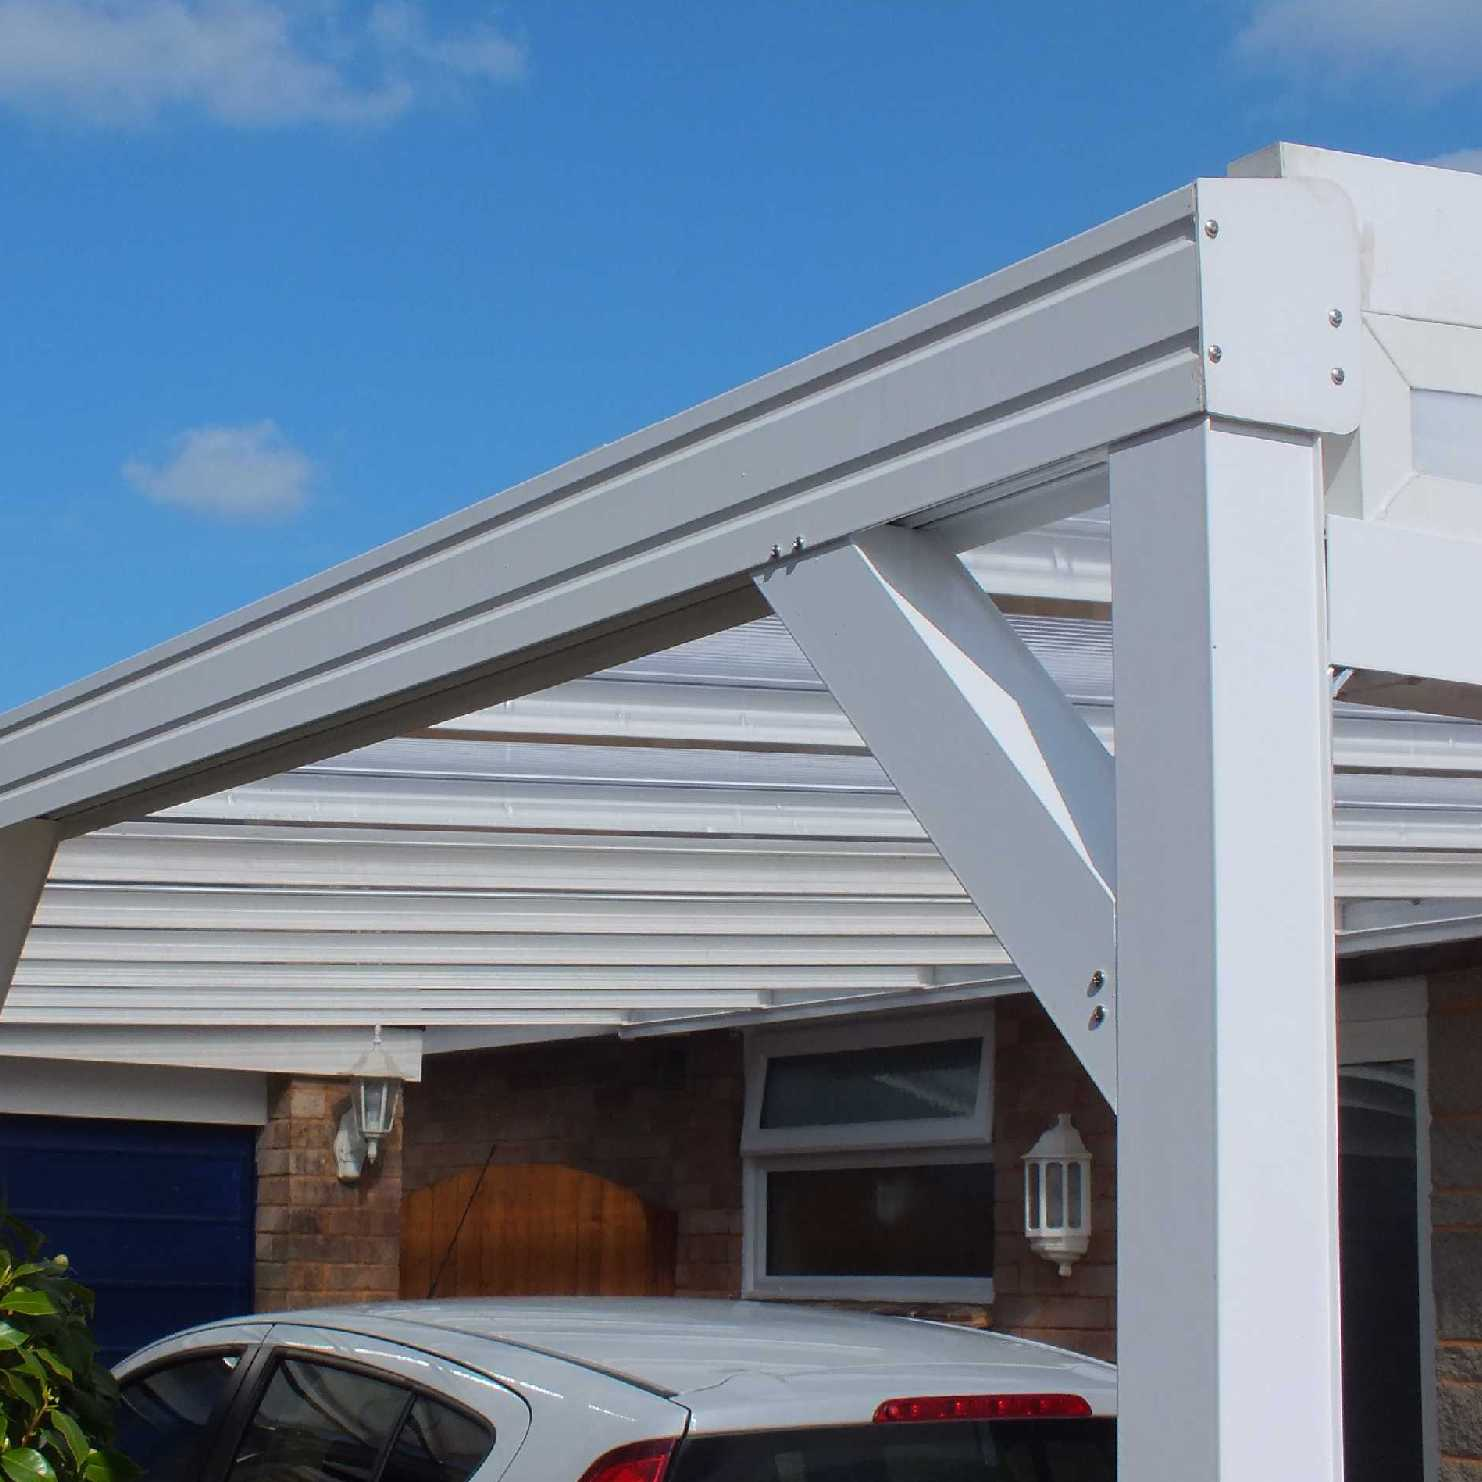 Buy Omega Smart Lean-To Canopy with 16mm Polycarbonate Glazing - 8.4m (W) x 2.5m (P), (4) Supporting Posts online today